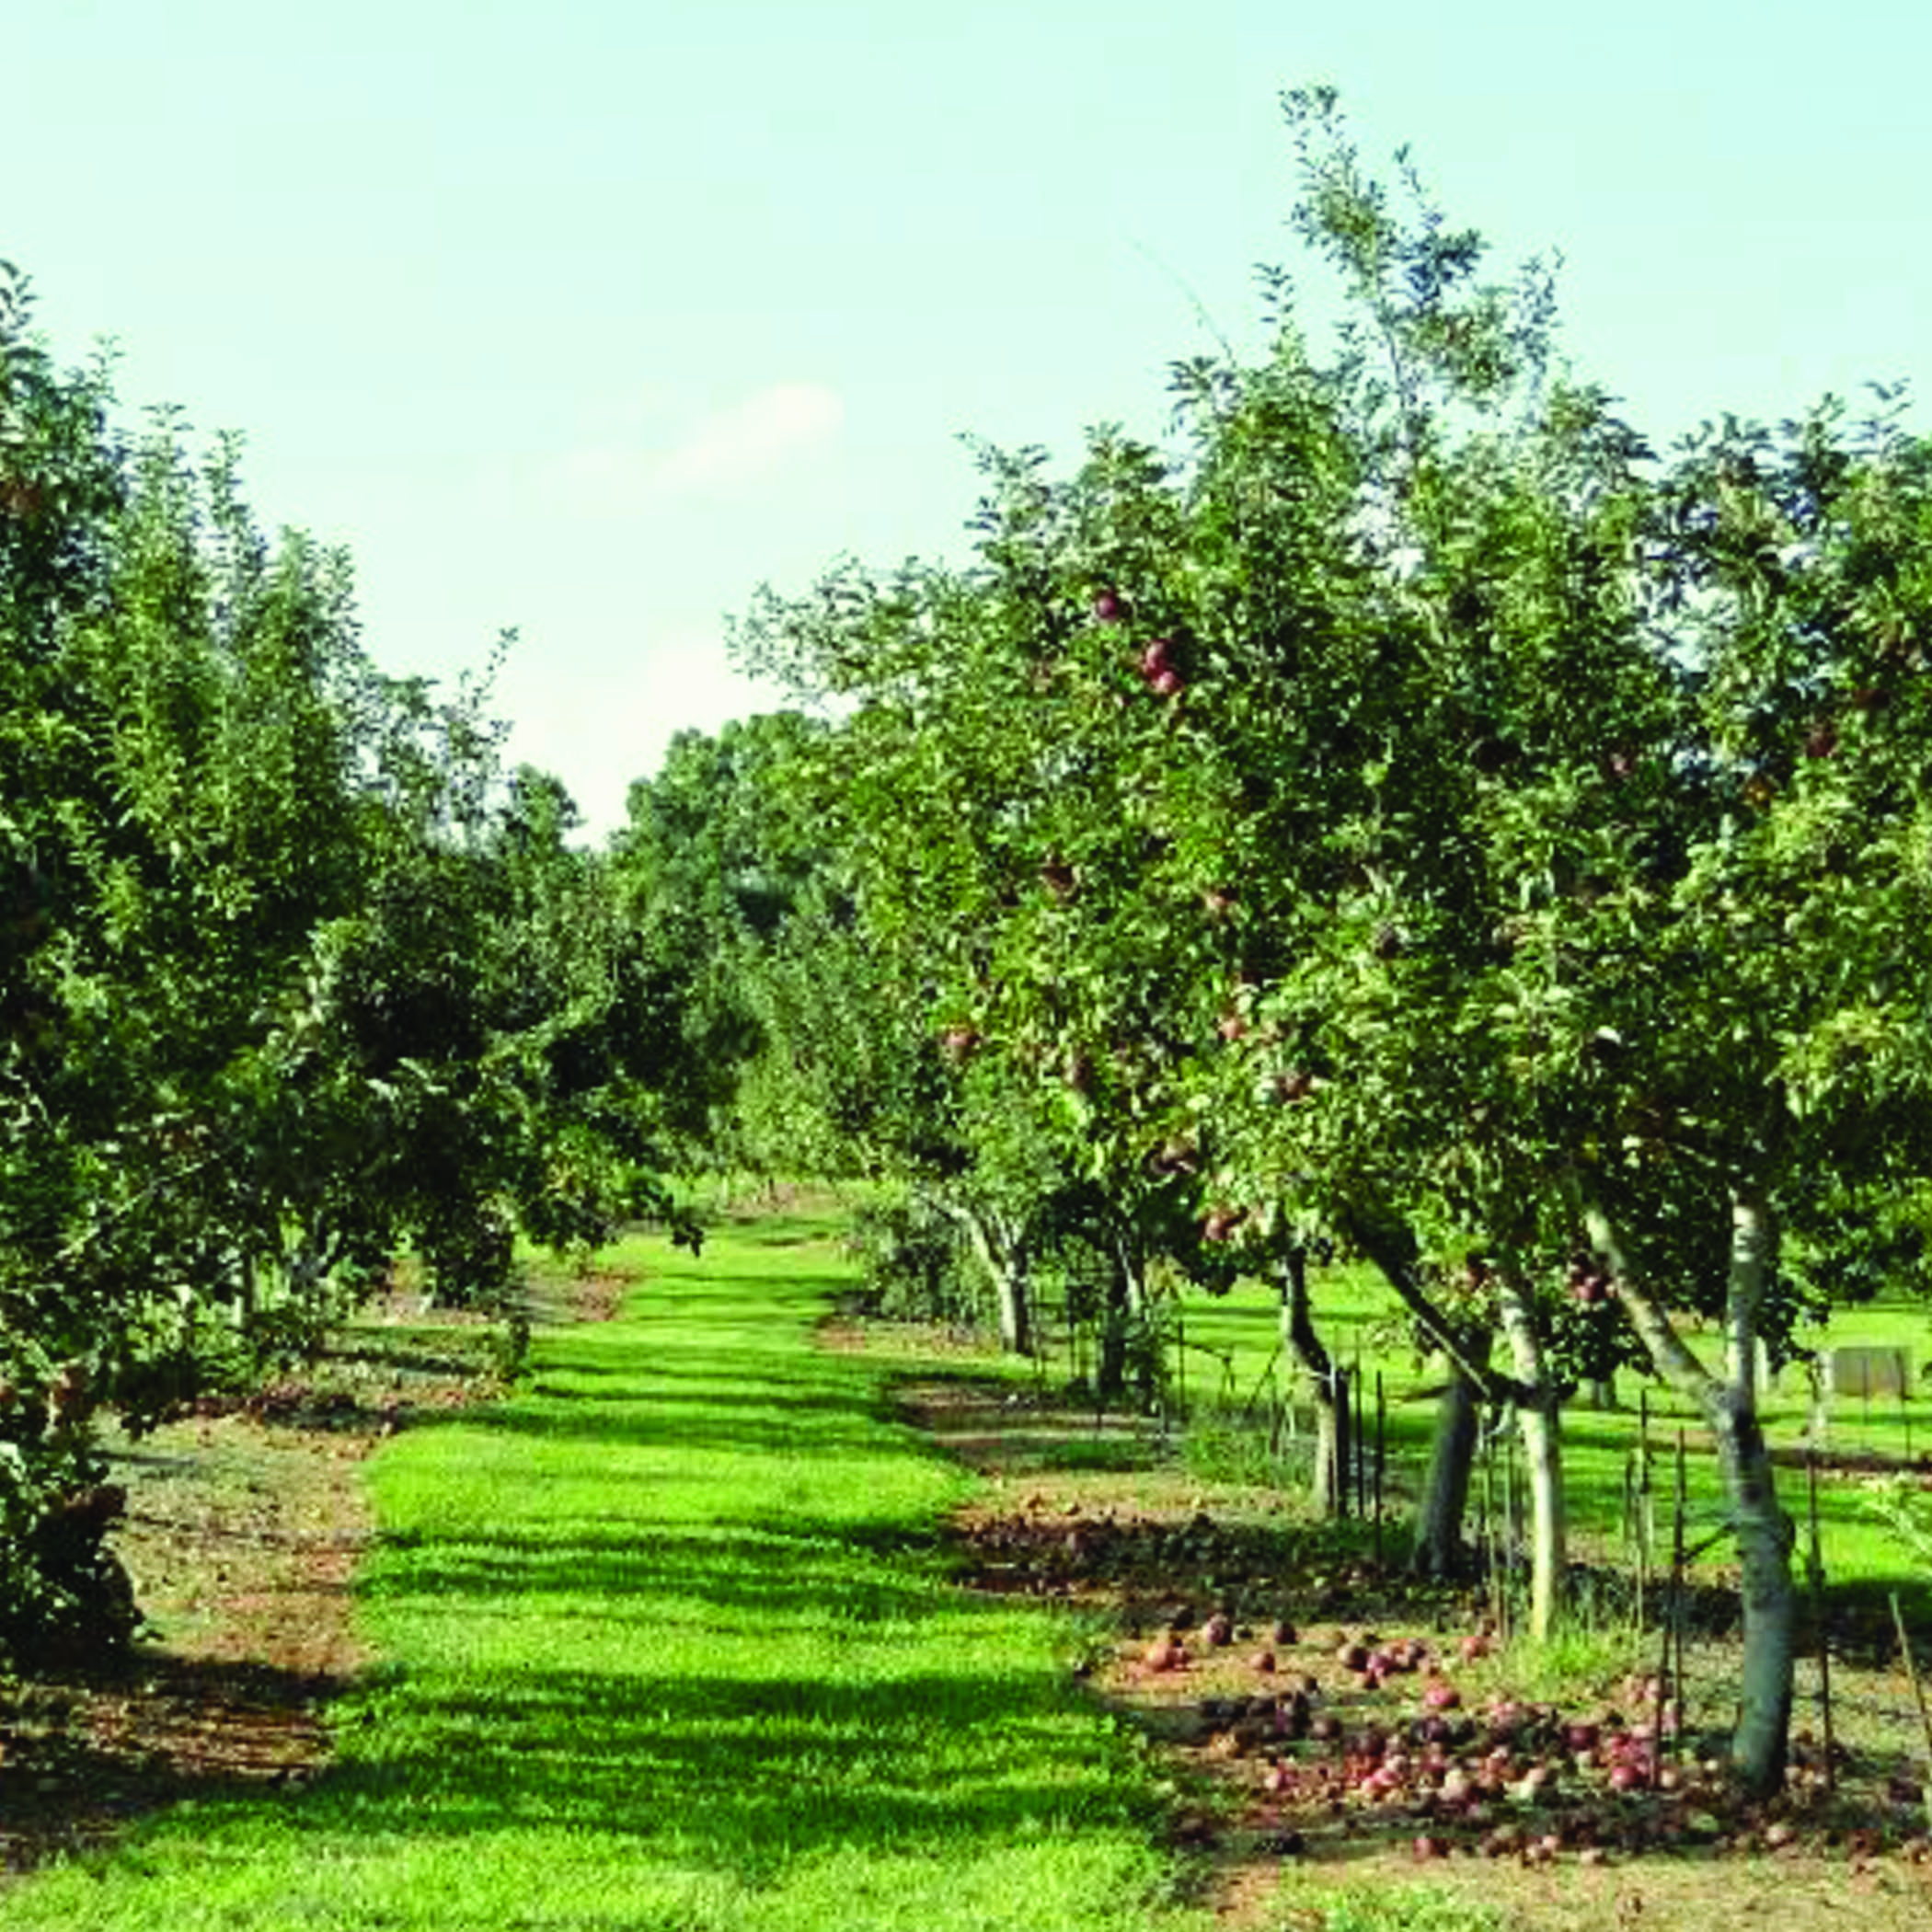 Apple orchard with ripe red apples on the trees